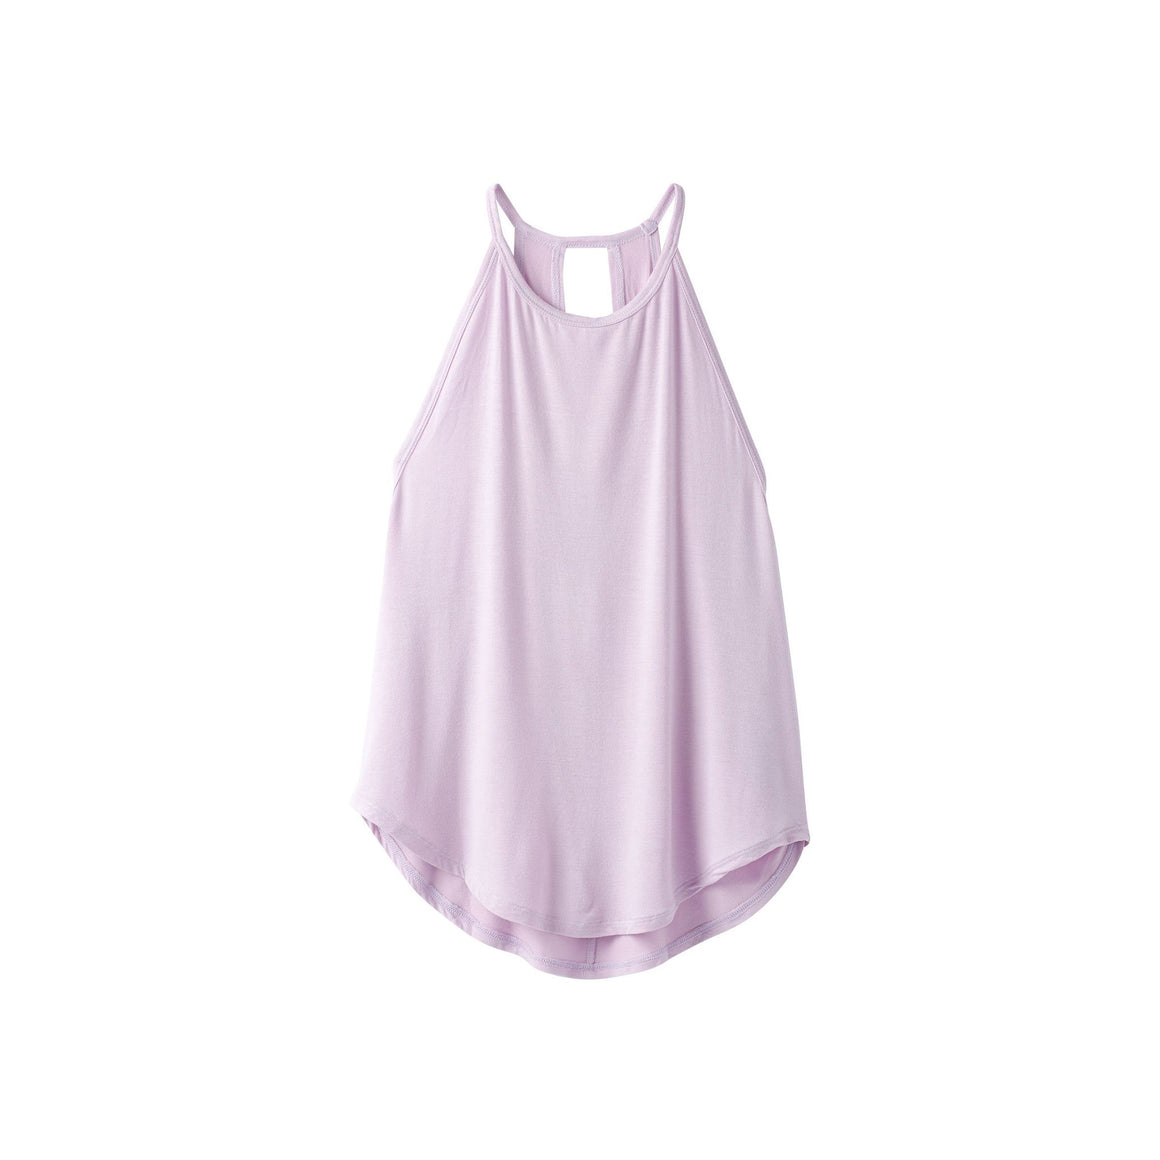 Prana Reylian Top - Women's